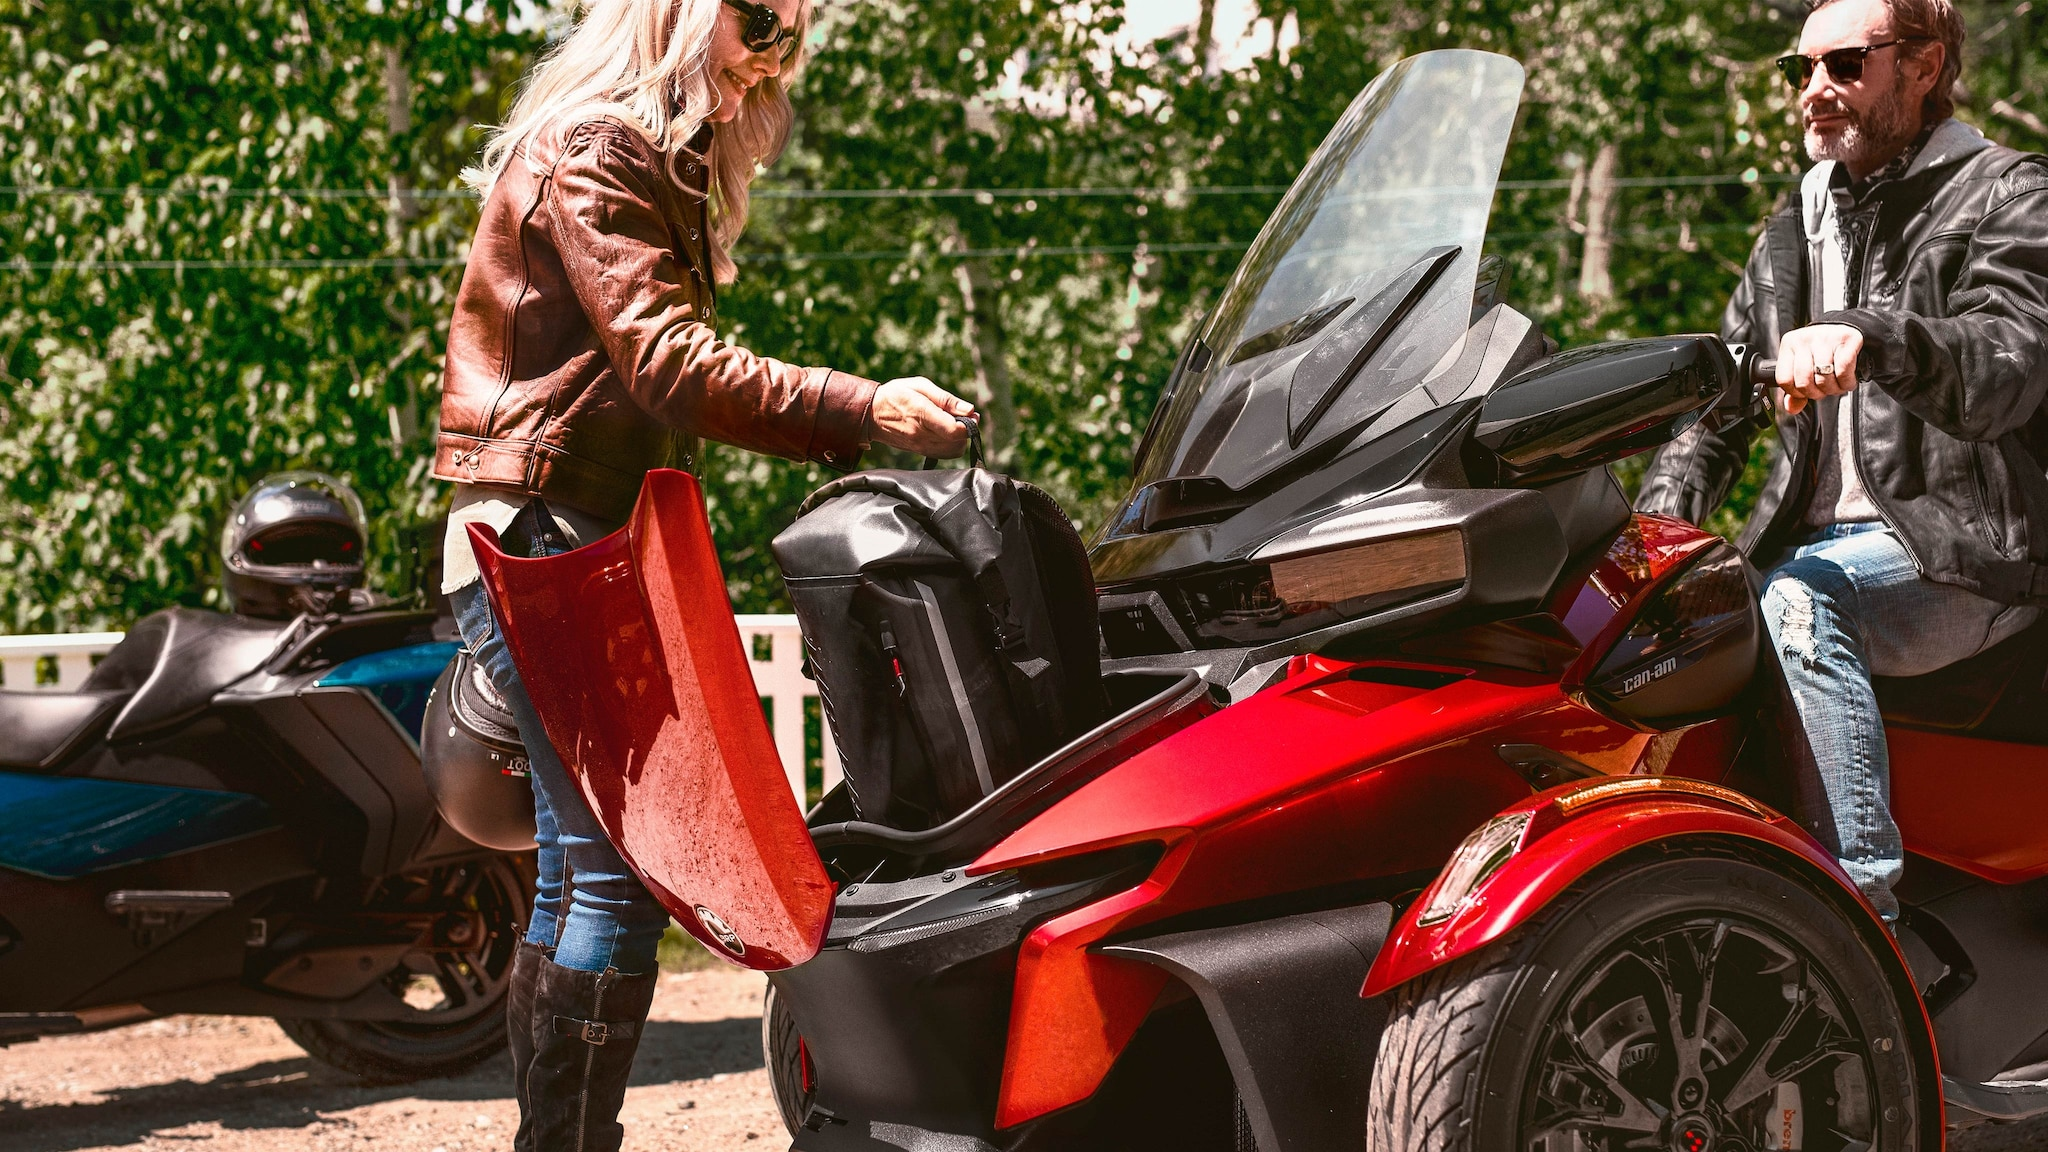 2021 Can Am Spyder Rt 3 Wheel Motorcycle Models Can Am On Road